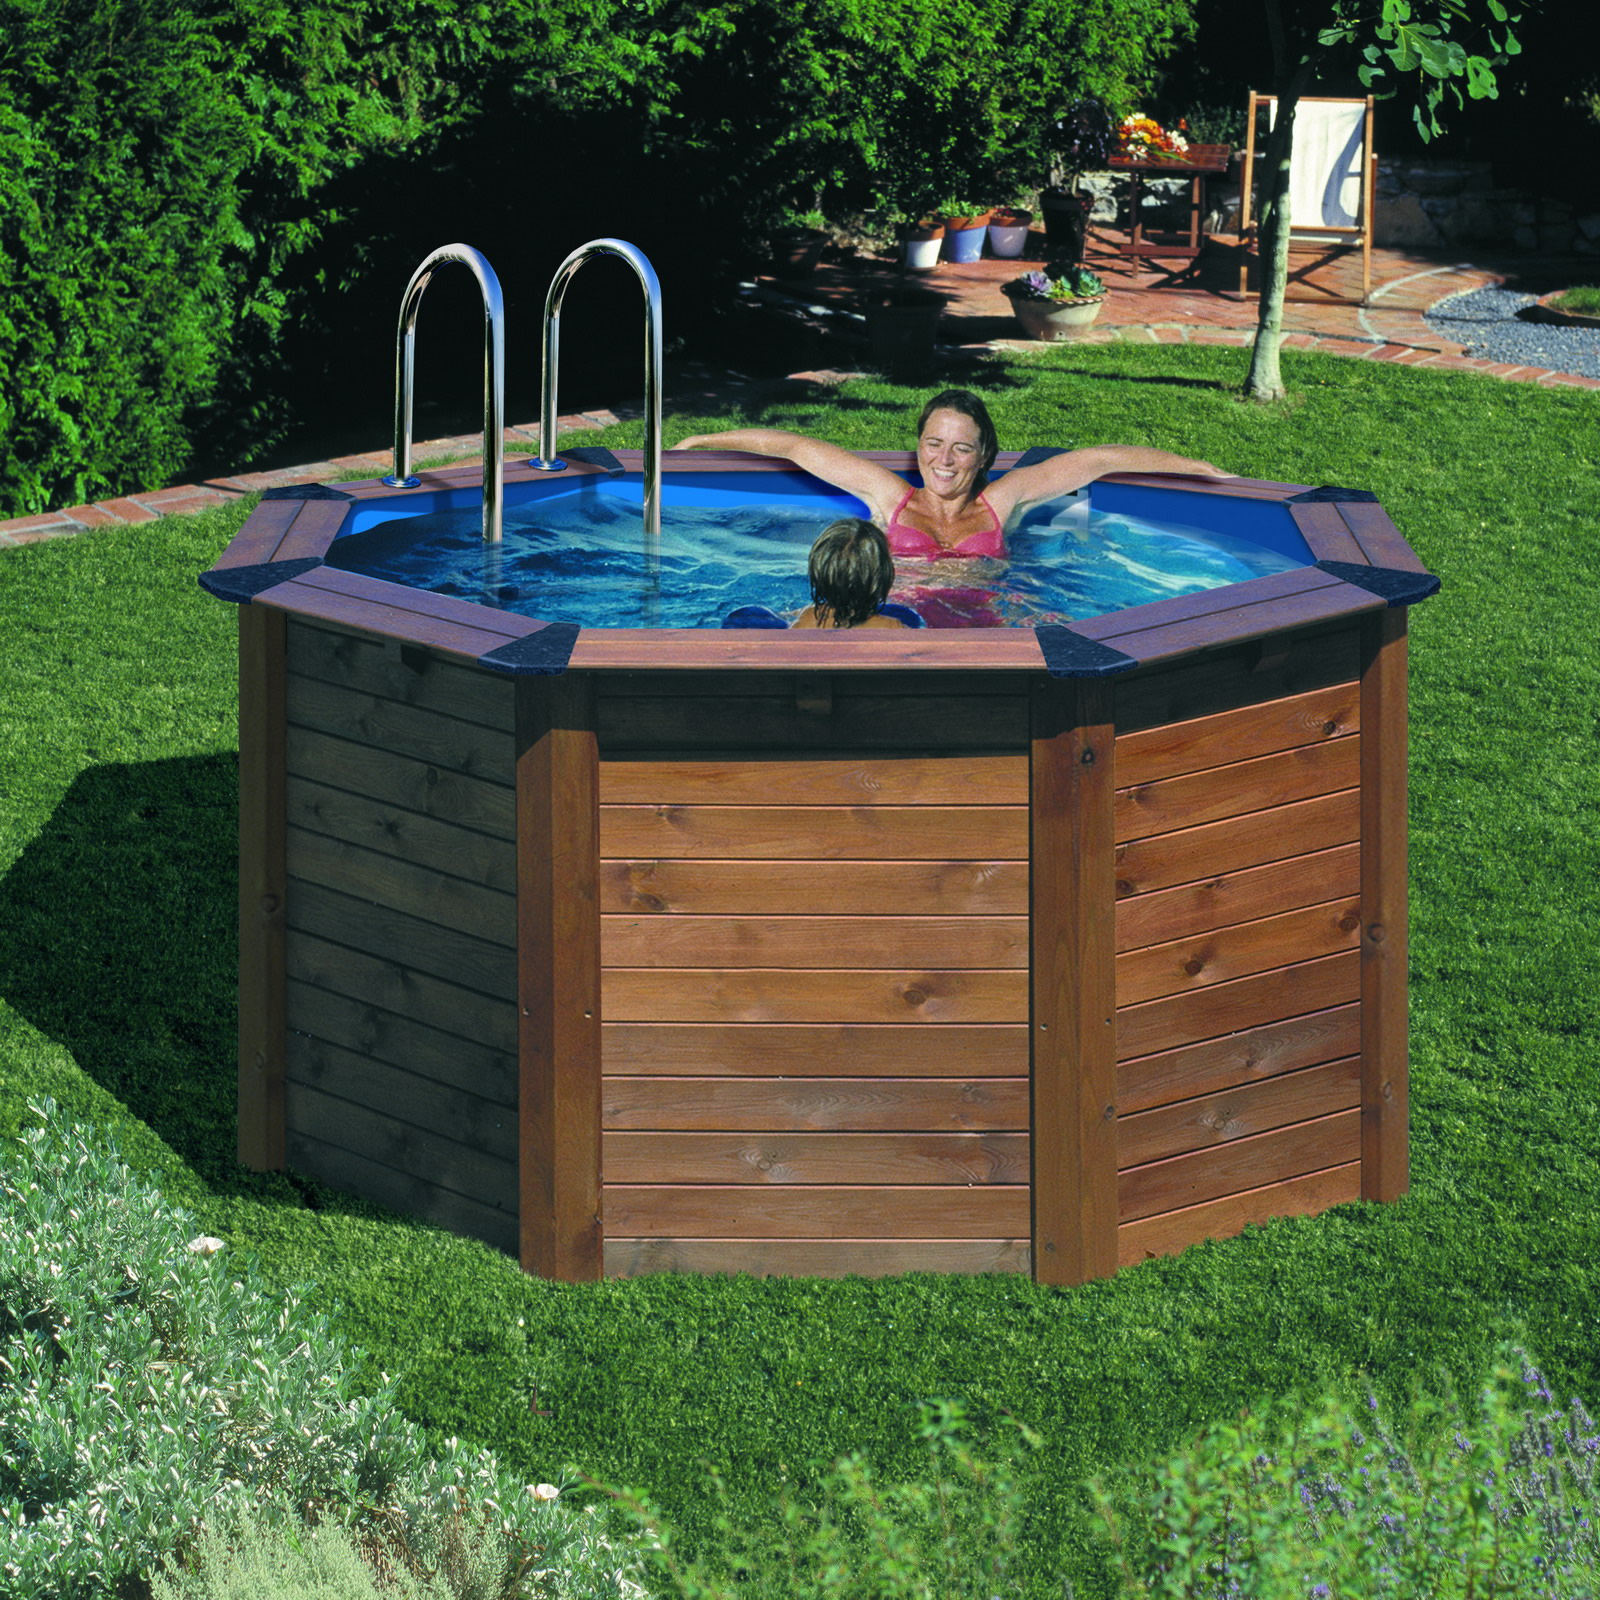 Piscine autoportante for Piscine hors sol bois 4x2